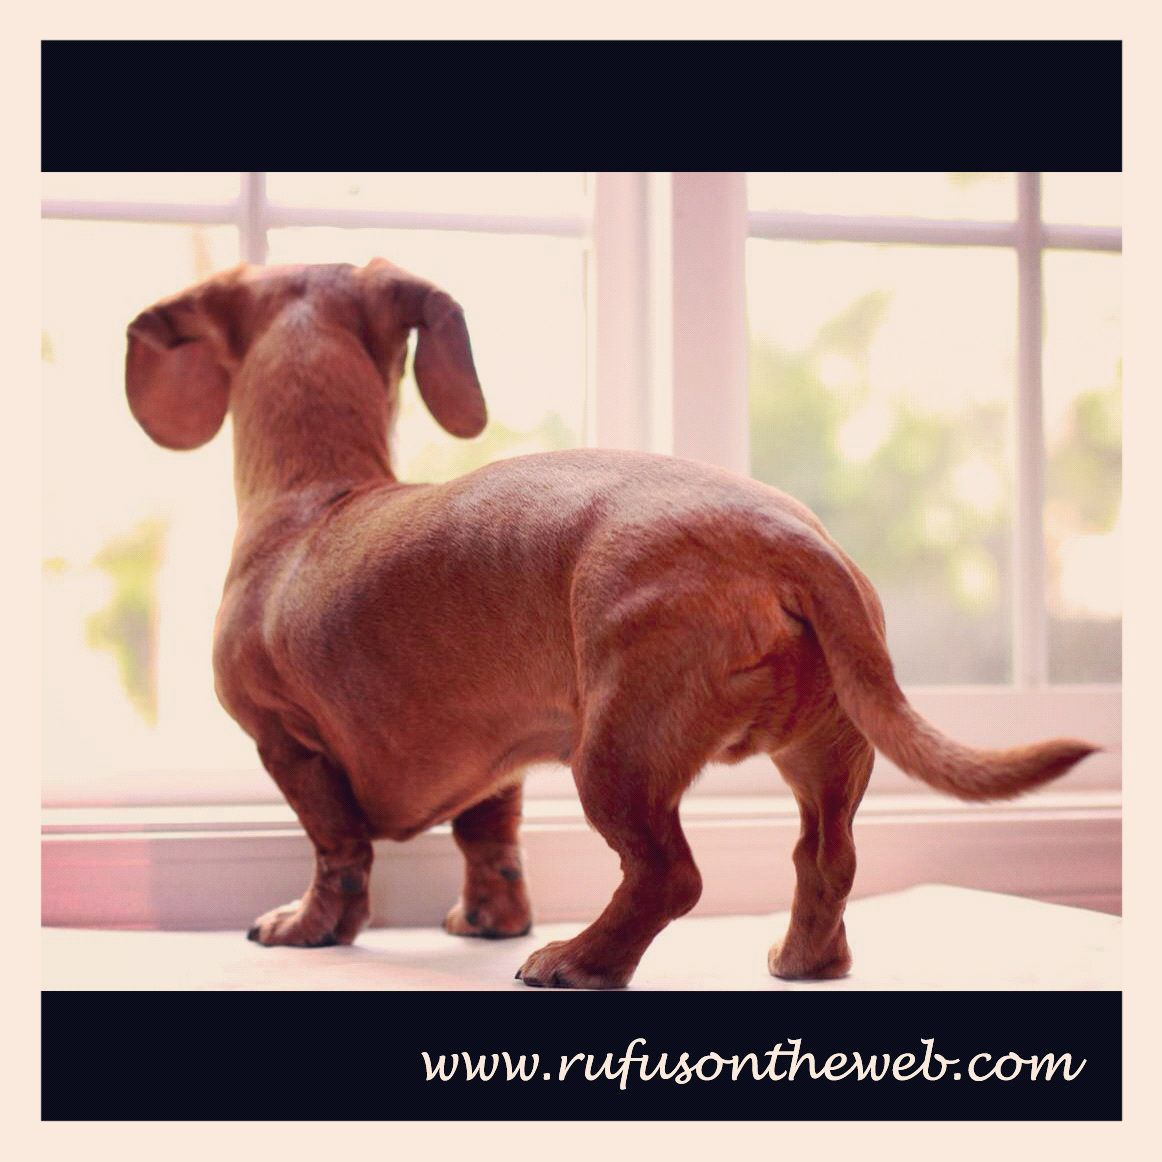 Creating awareness. http://wp.me/p27Fw1-dA #dachshund #doxies #lost dogs